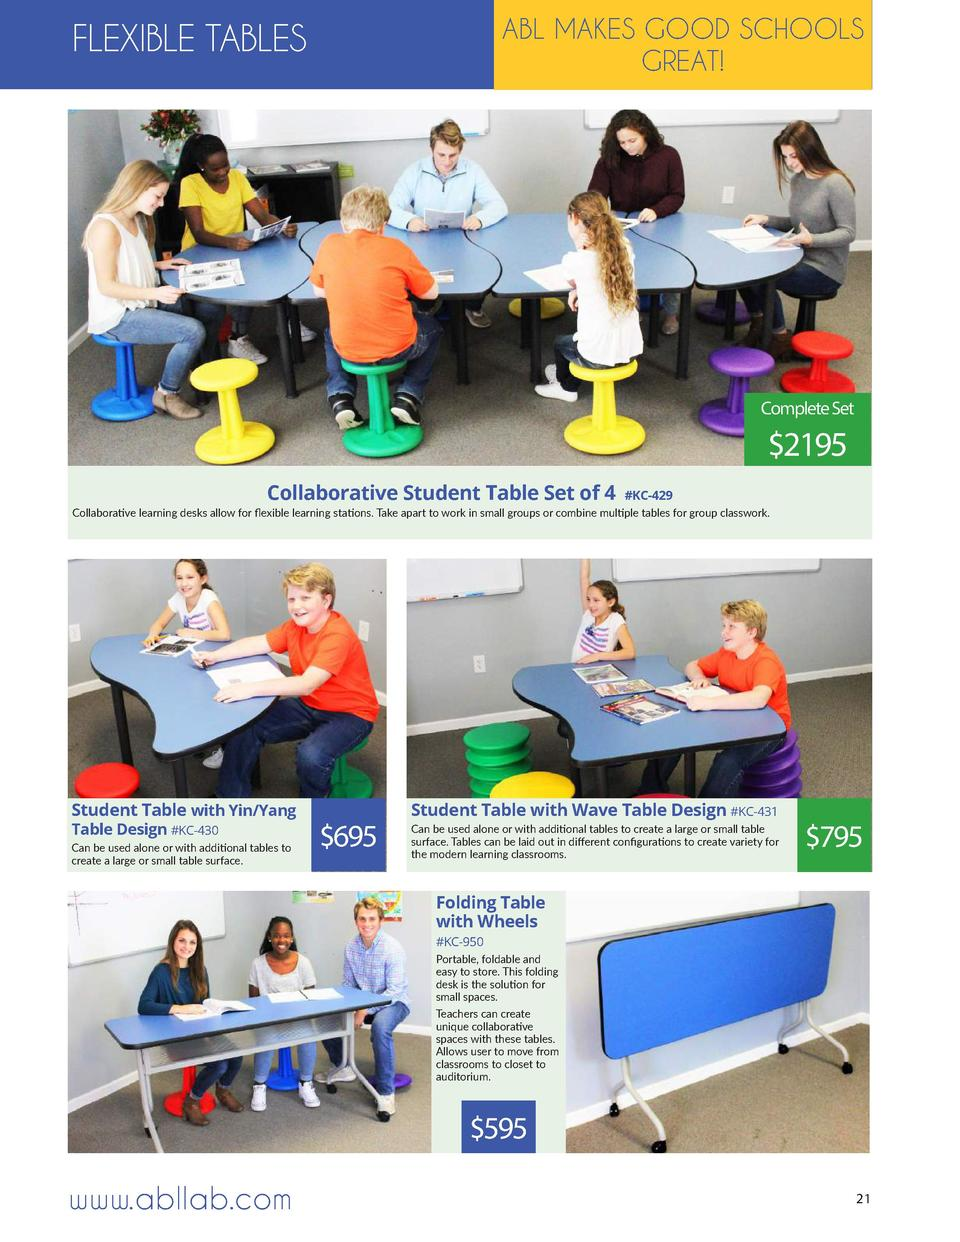 ABL MAKES GOOD SCHOOLS GREAT   FLEXIBLE TABLES  Complete Set   2195 Collaborative Student Table Set of 4   KC-429  Collabo...